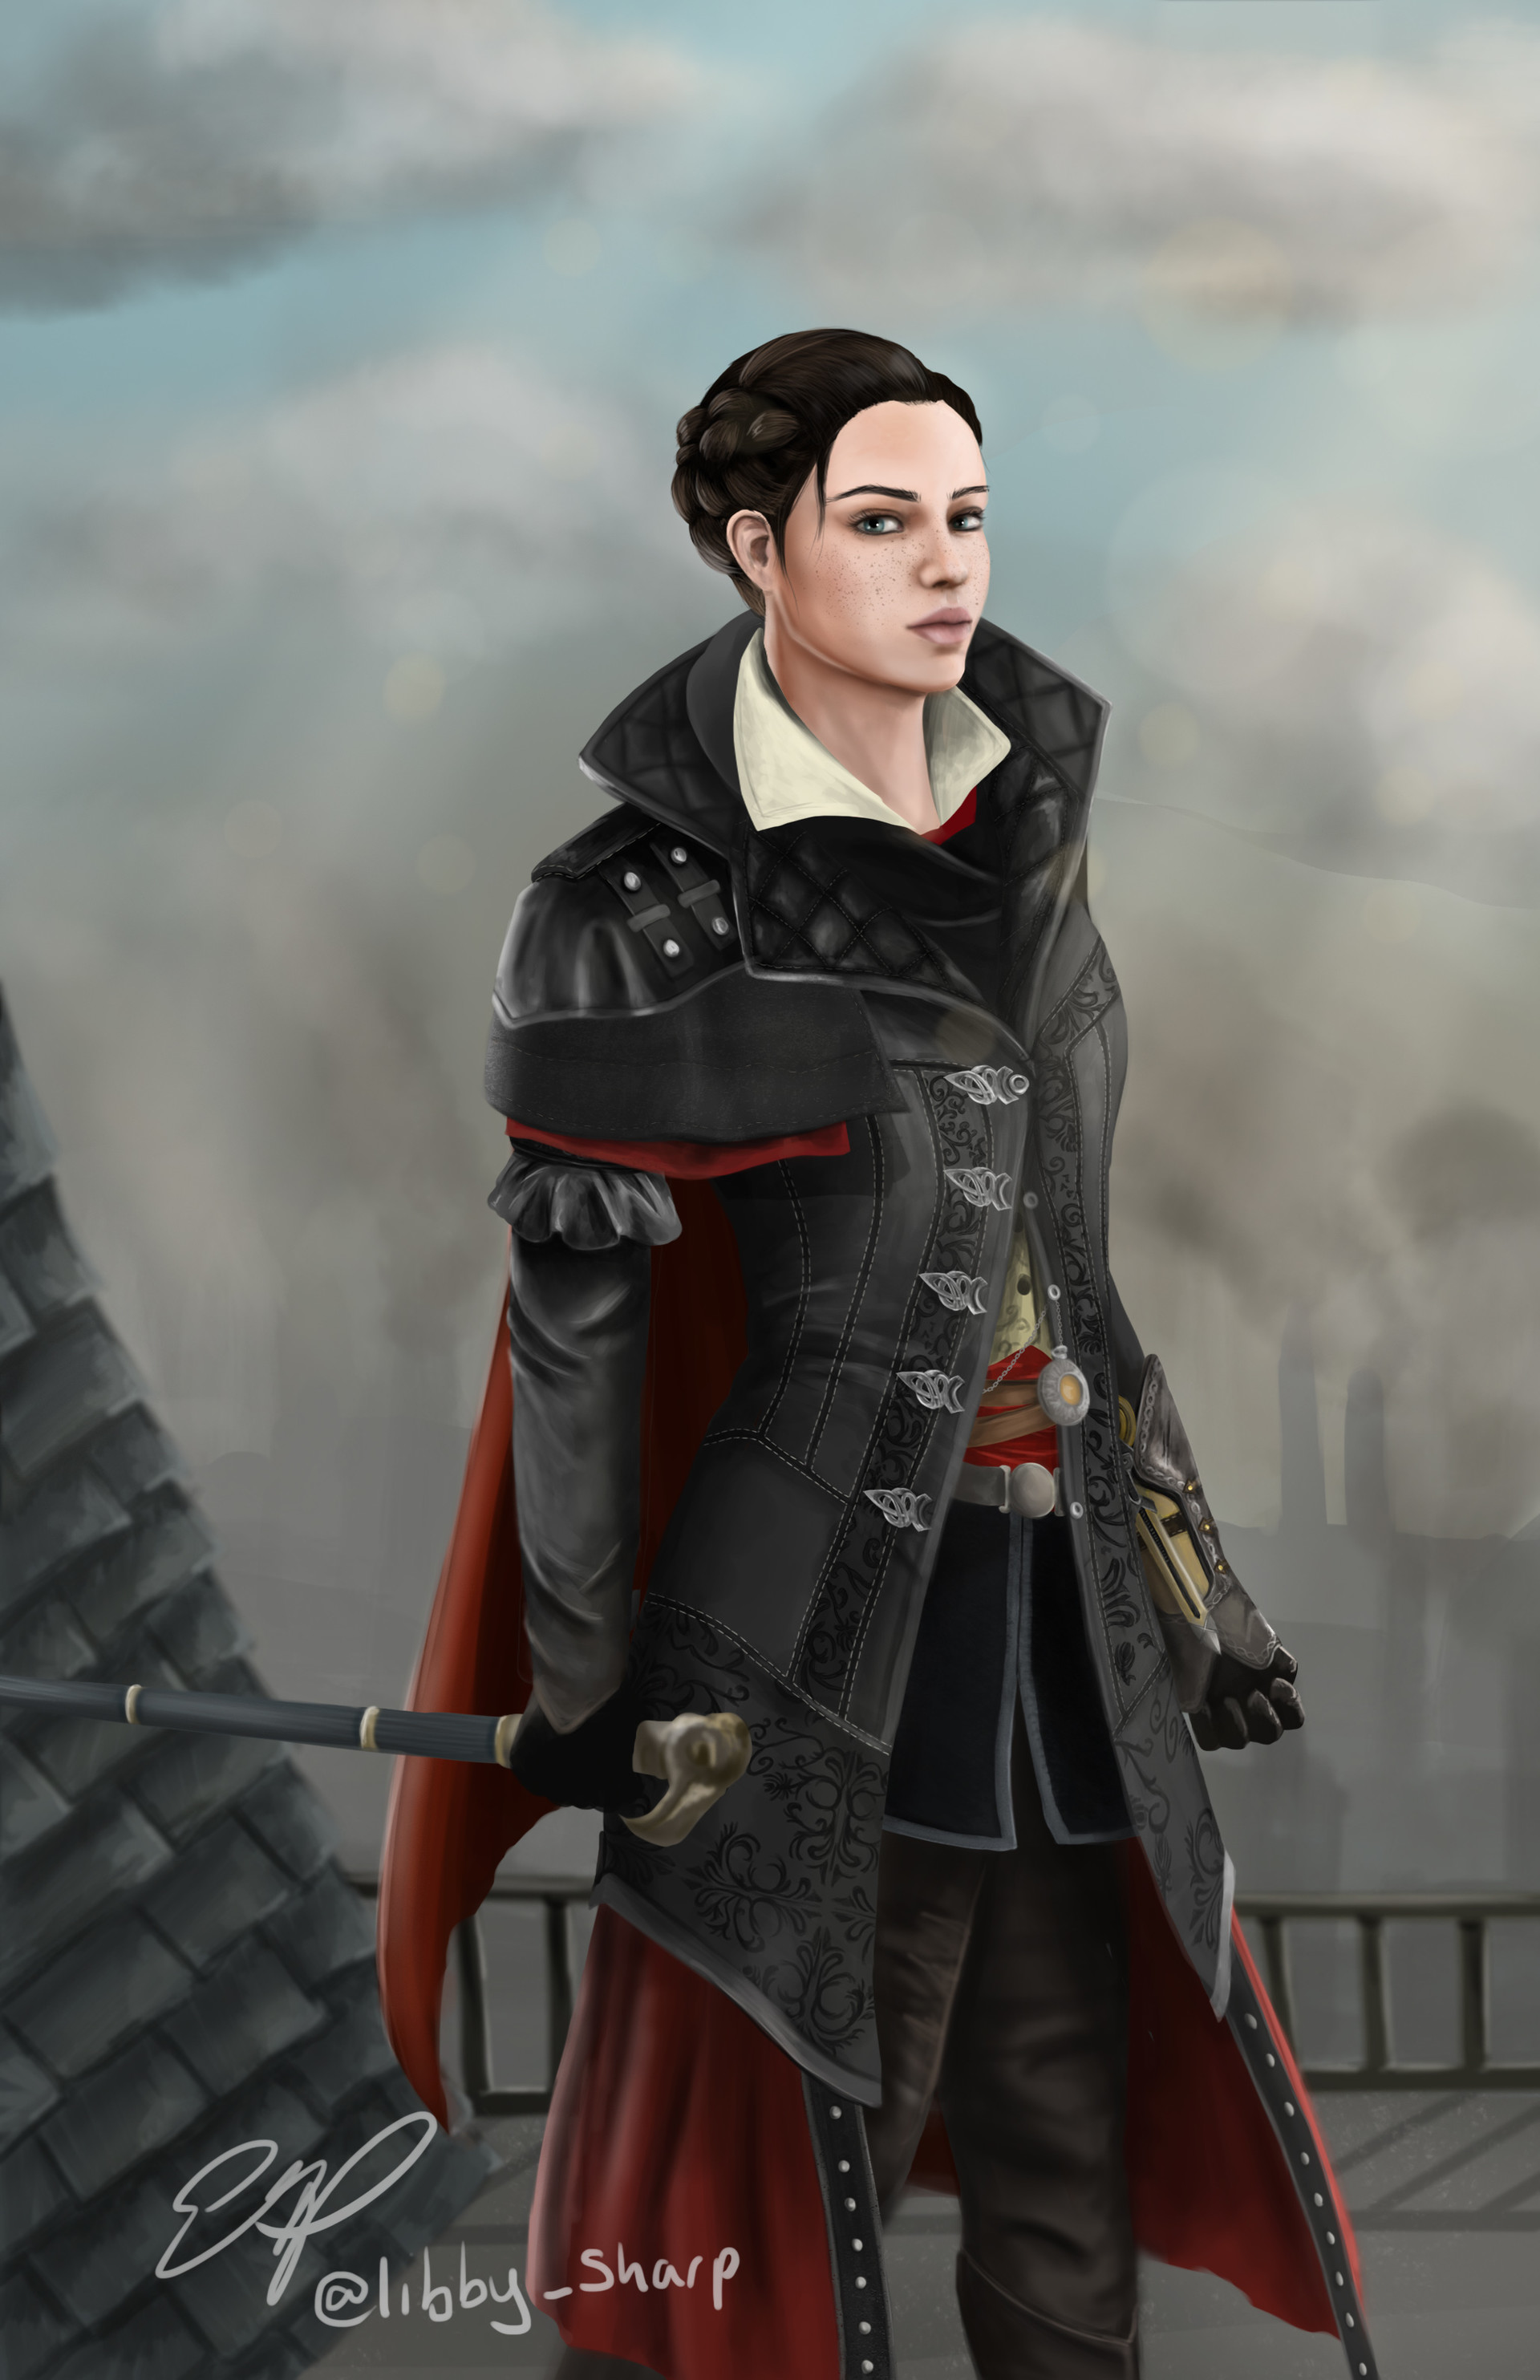 Elizabeth Sharp Evie Frye London is waiting to be liberated. elizabeth sharp evie frye